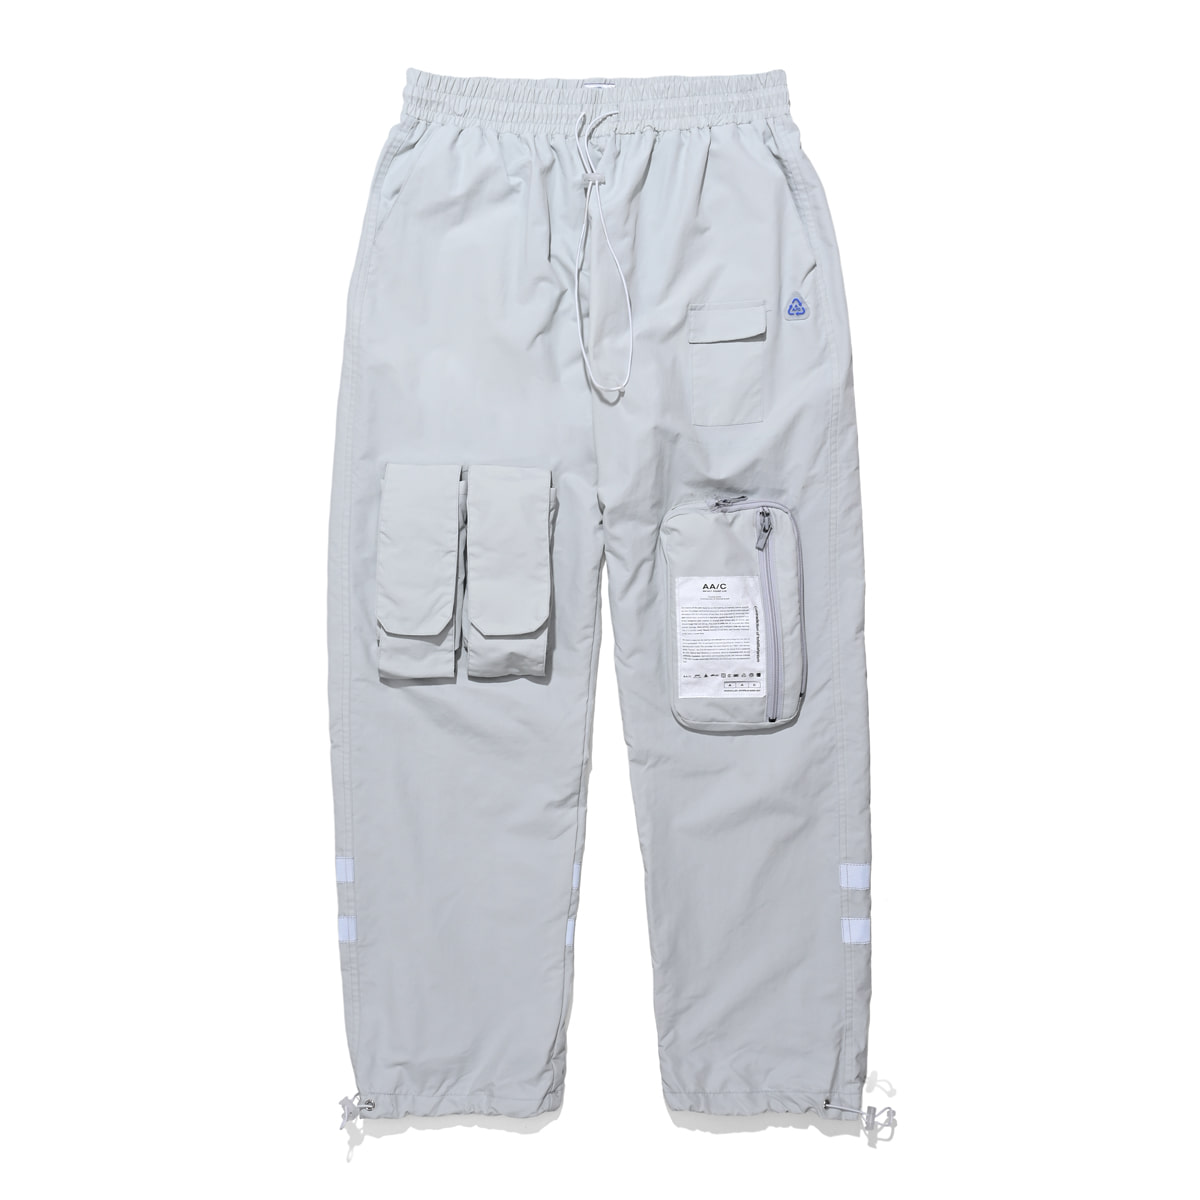 [더블에이씨:AAC] 8 pocket smock pants (gray)